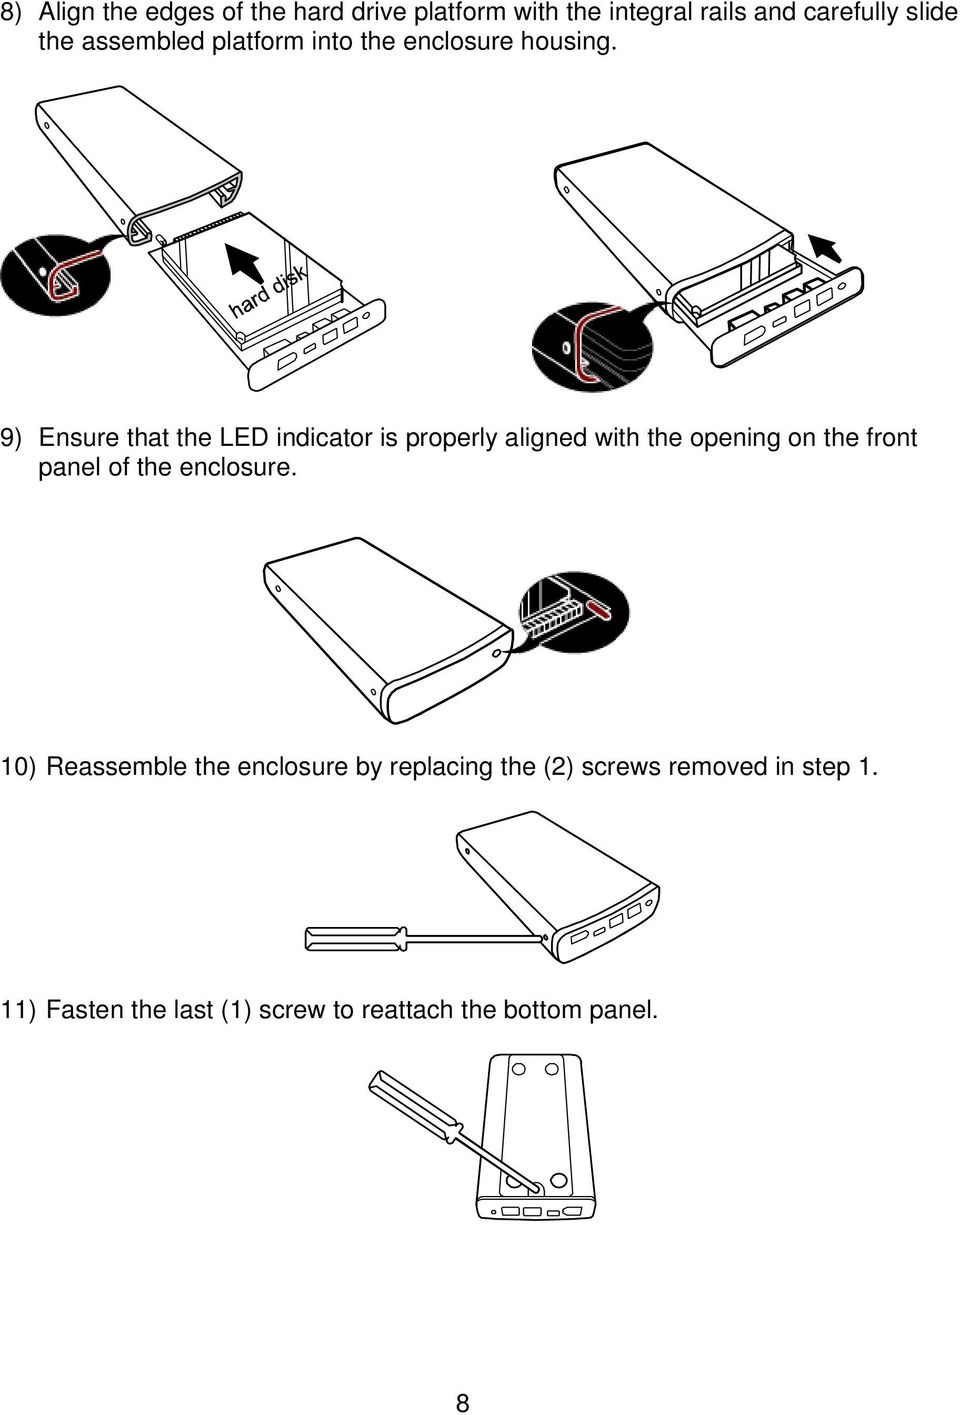 9) Ensure that the LED indicator is properly aligned with the opening on the front panel of the